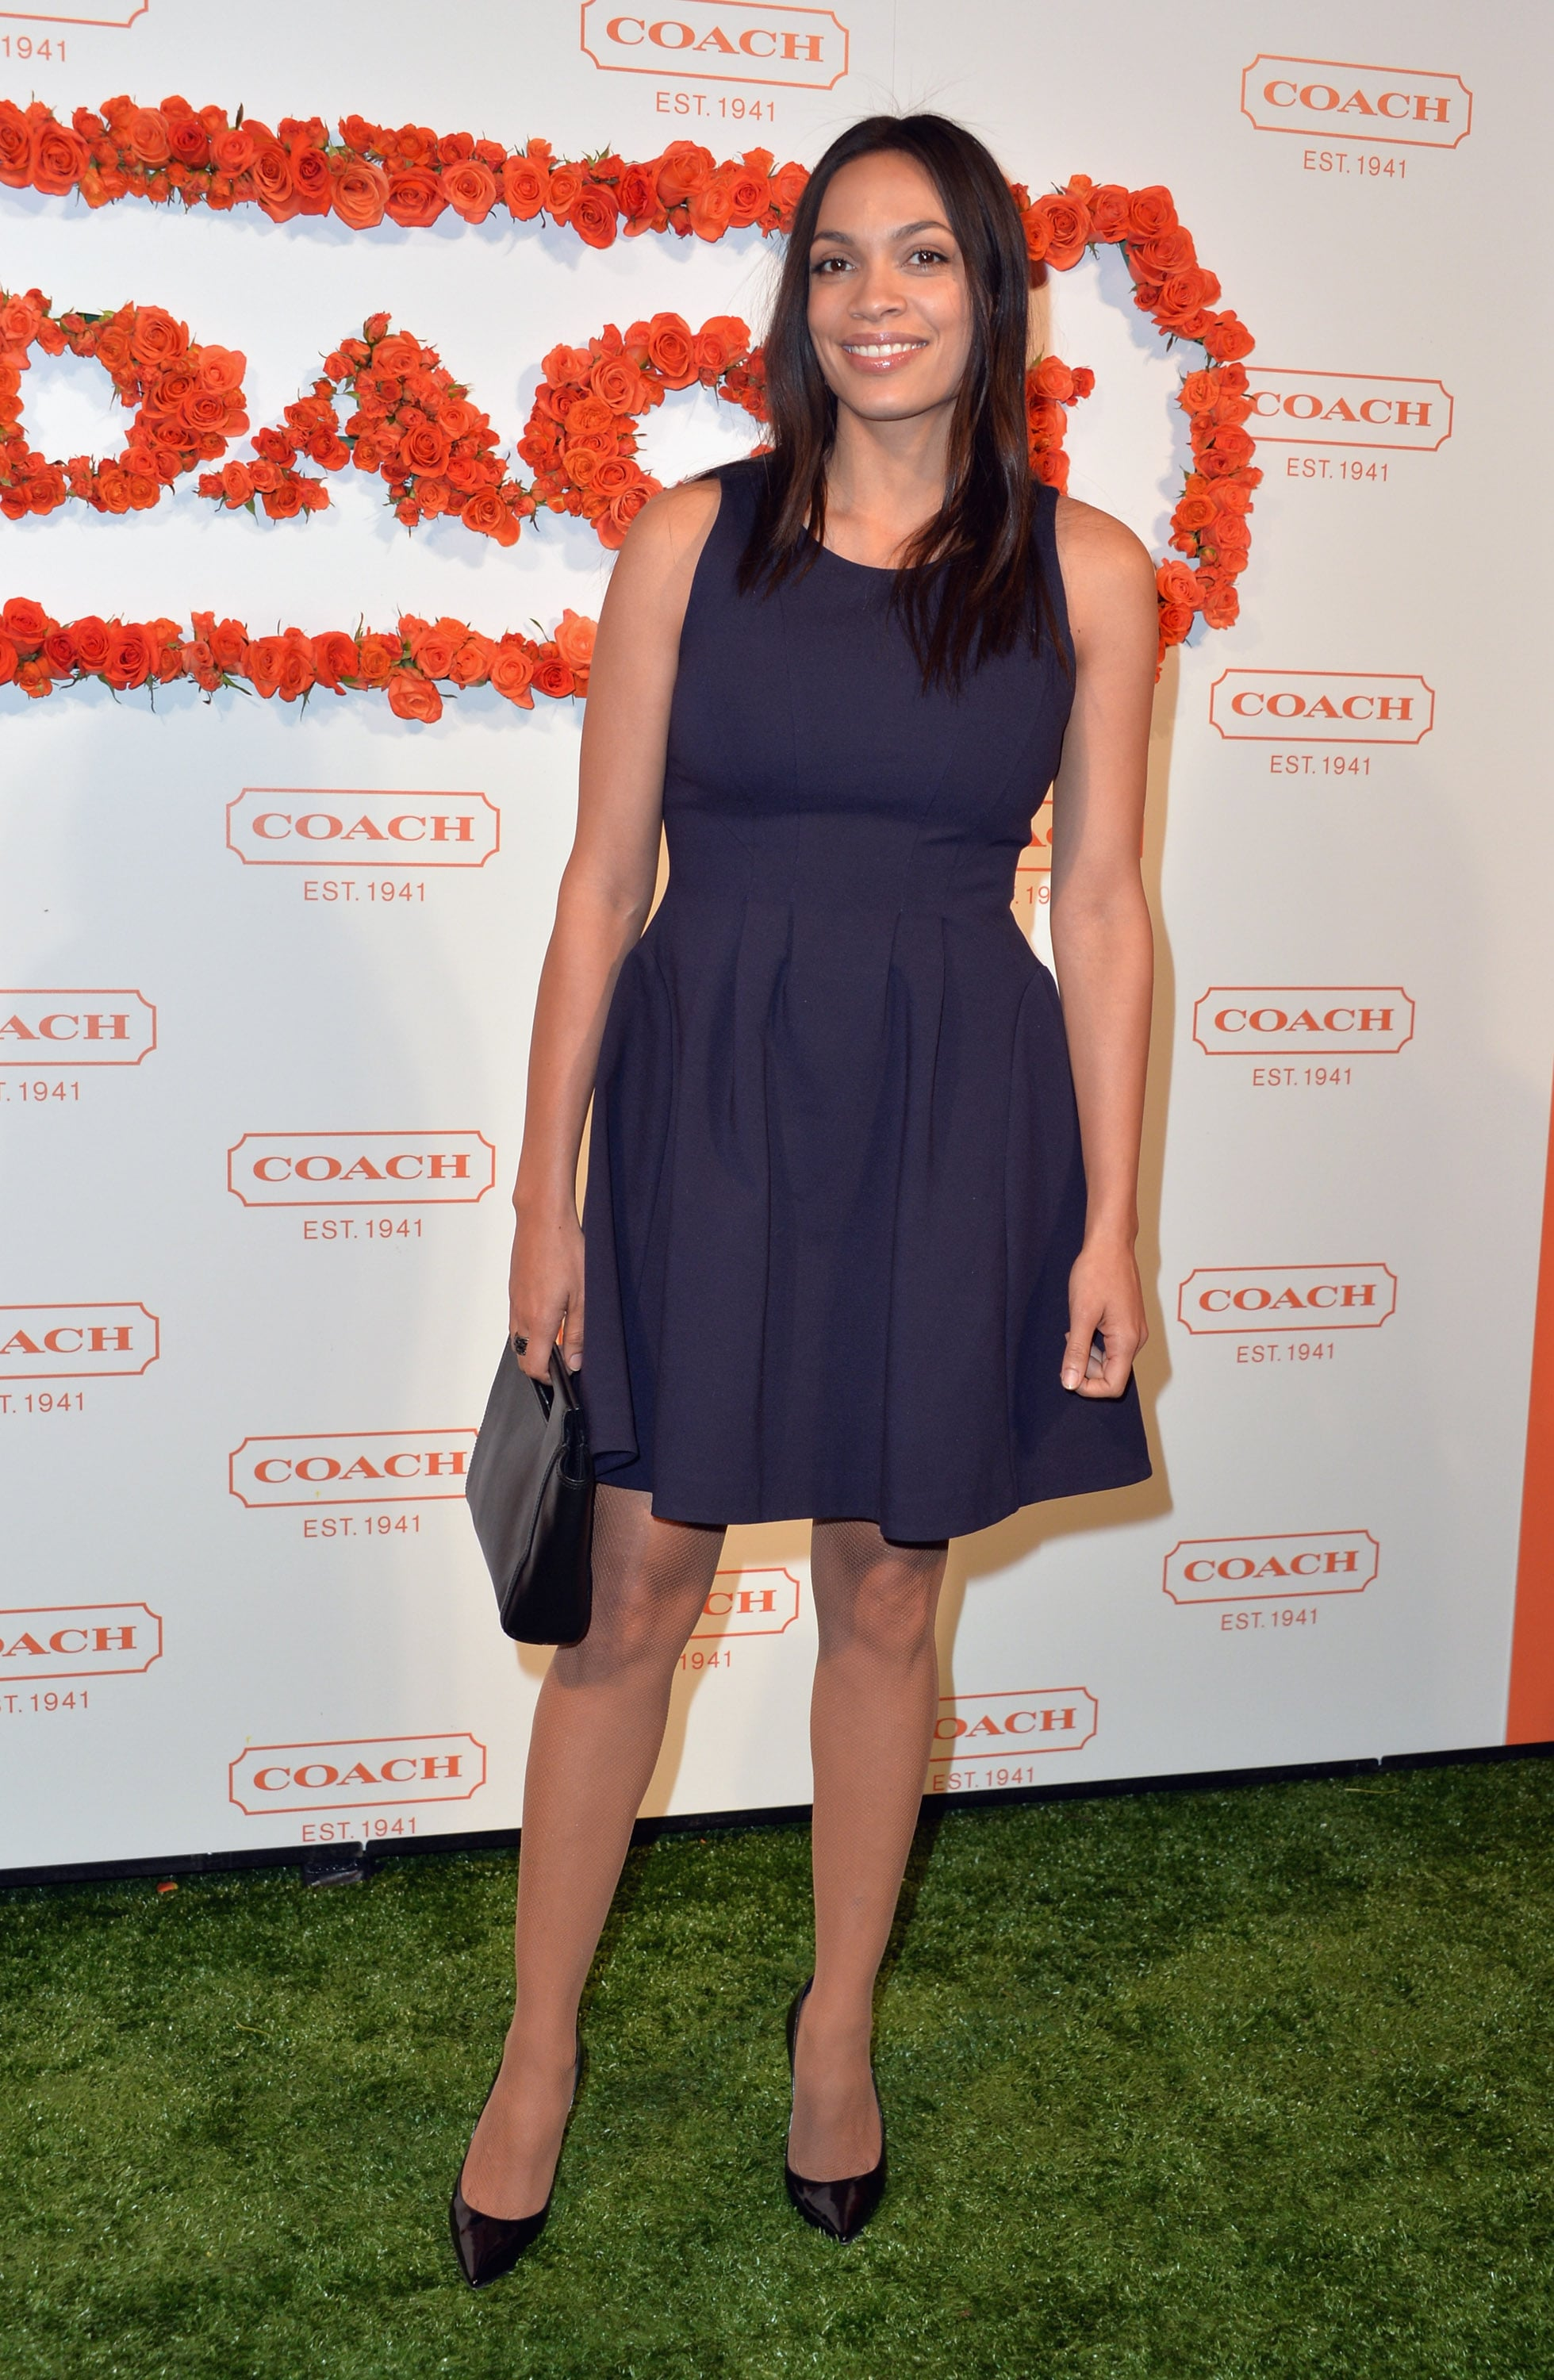 Rosario Dawson partnered sleek black accents with a navy blue fit-and-flare dress.